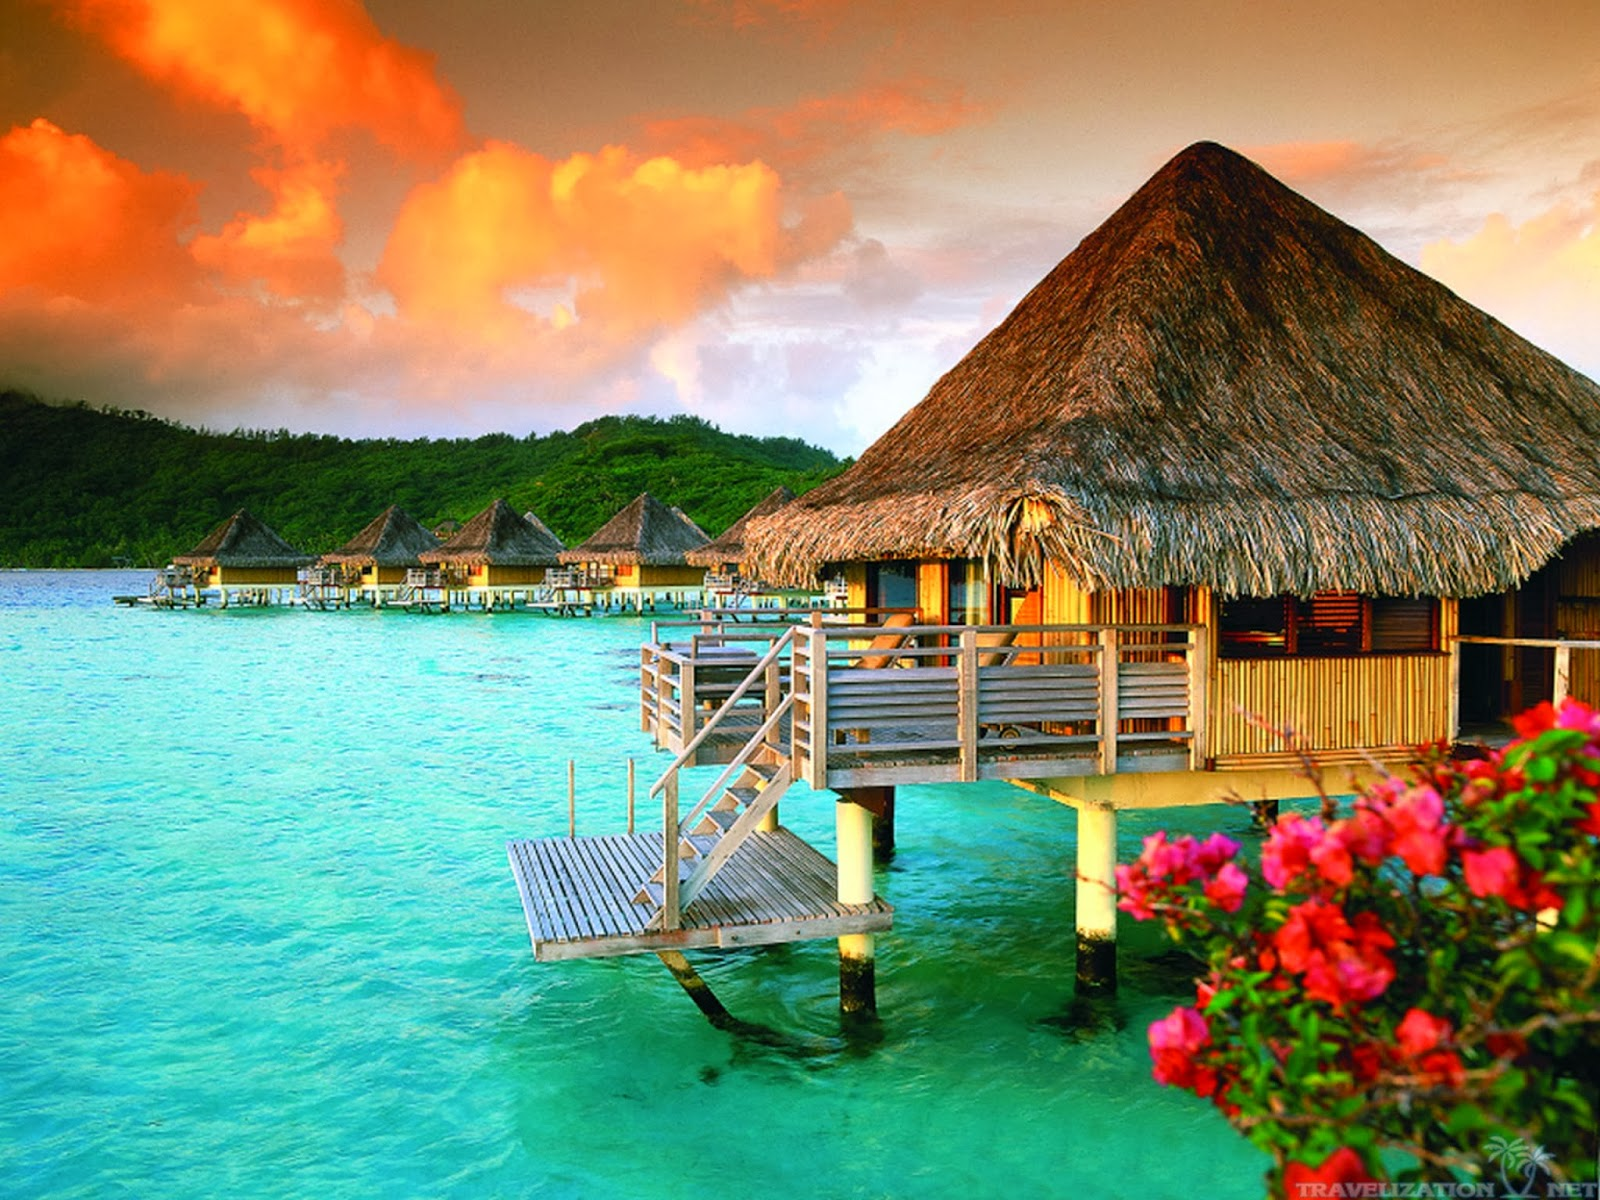 Most beautiful places in the world for holiday wallpaper Wallpaper 1600x1200